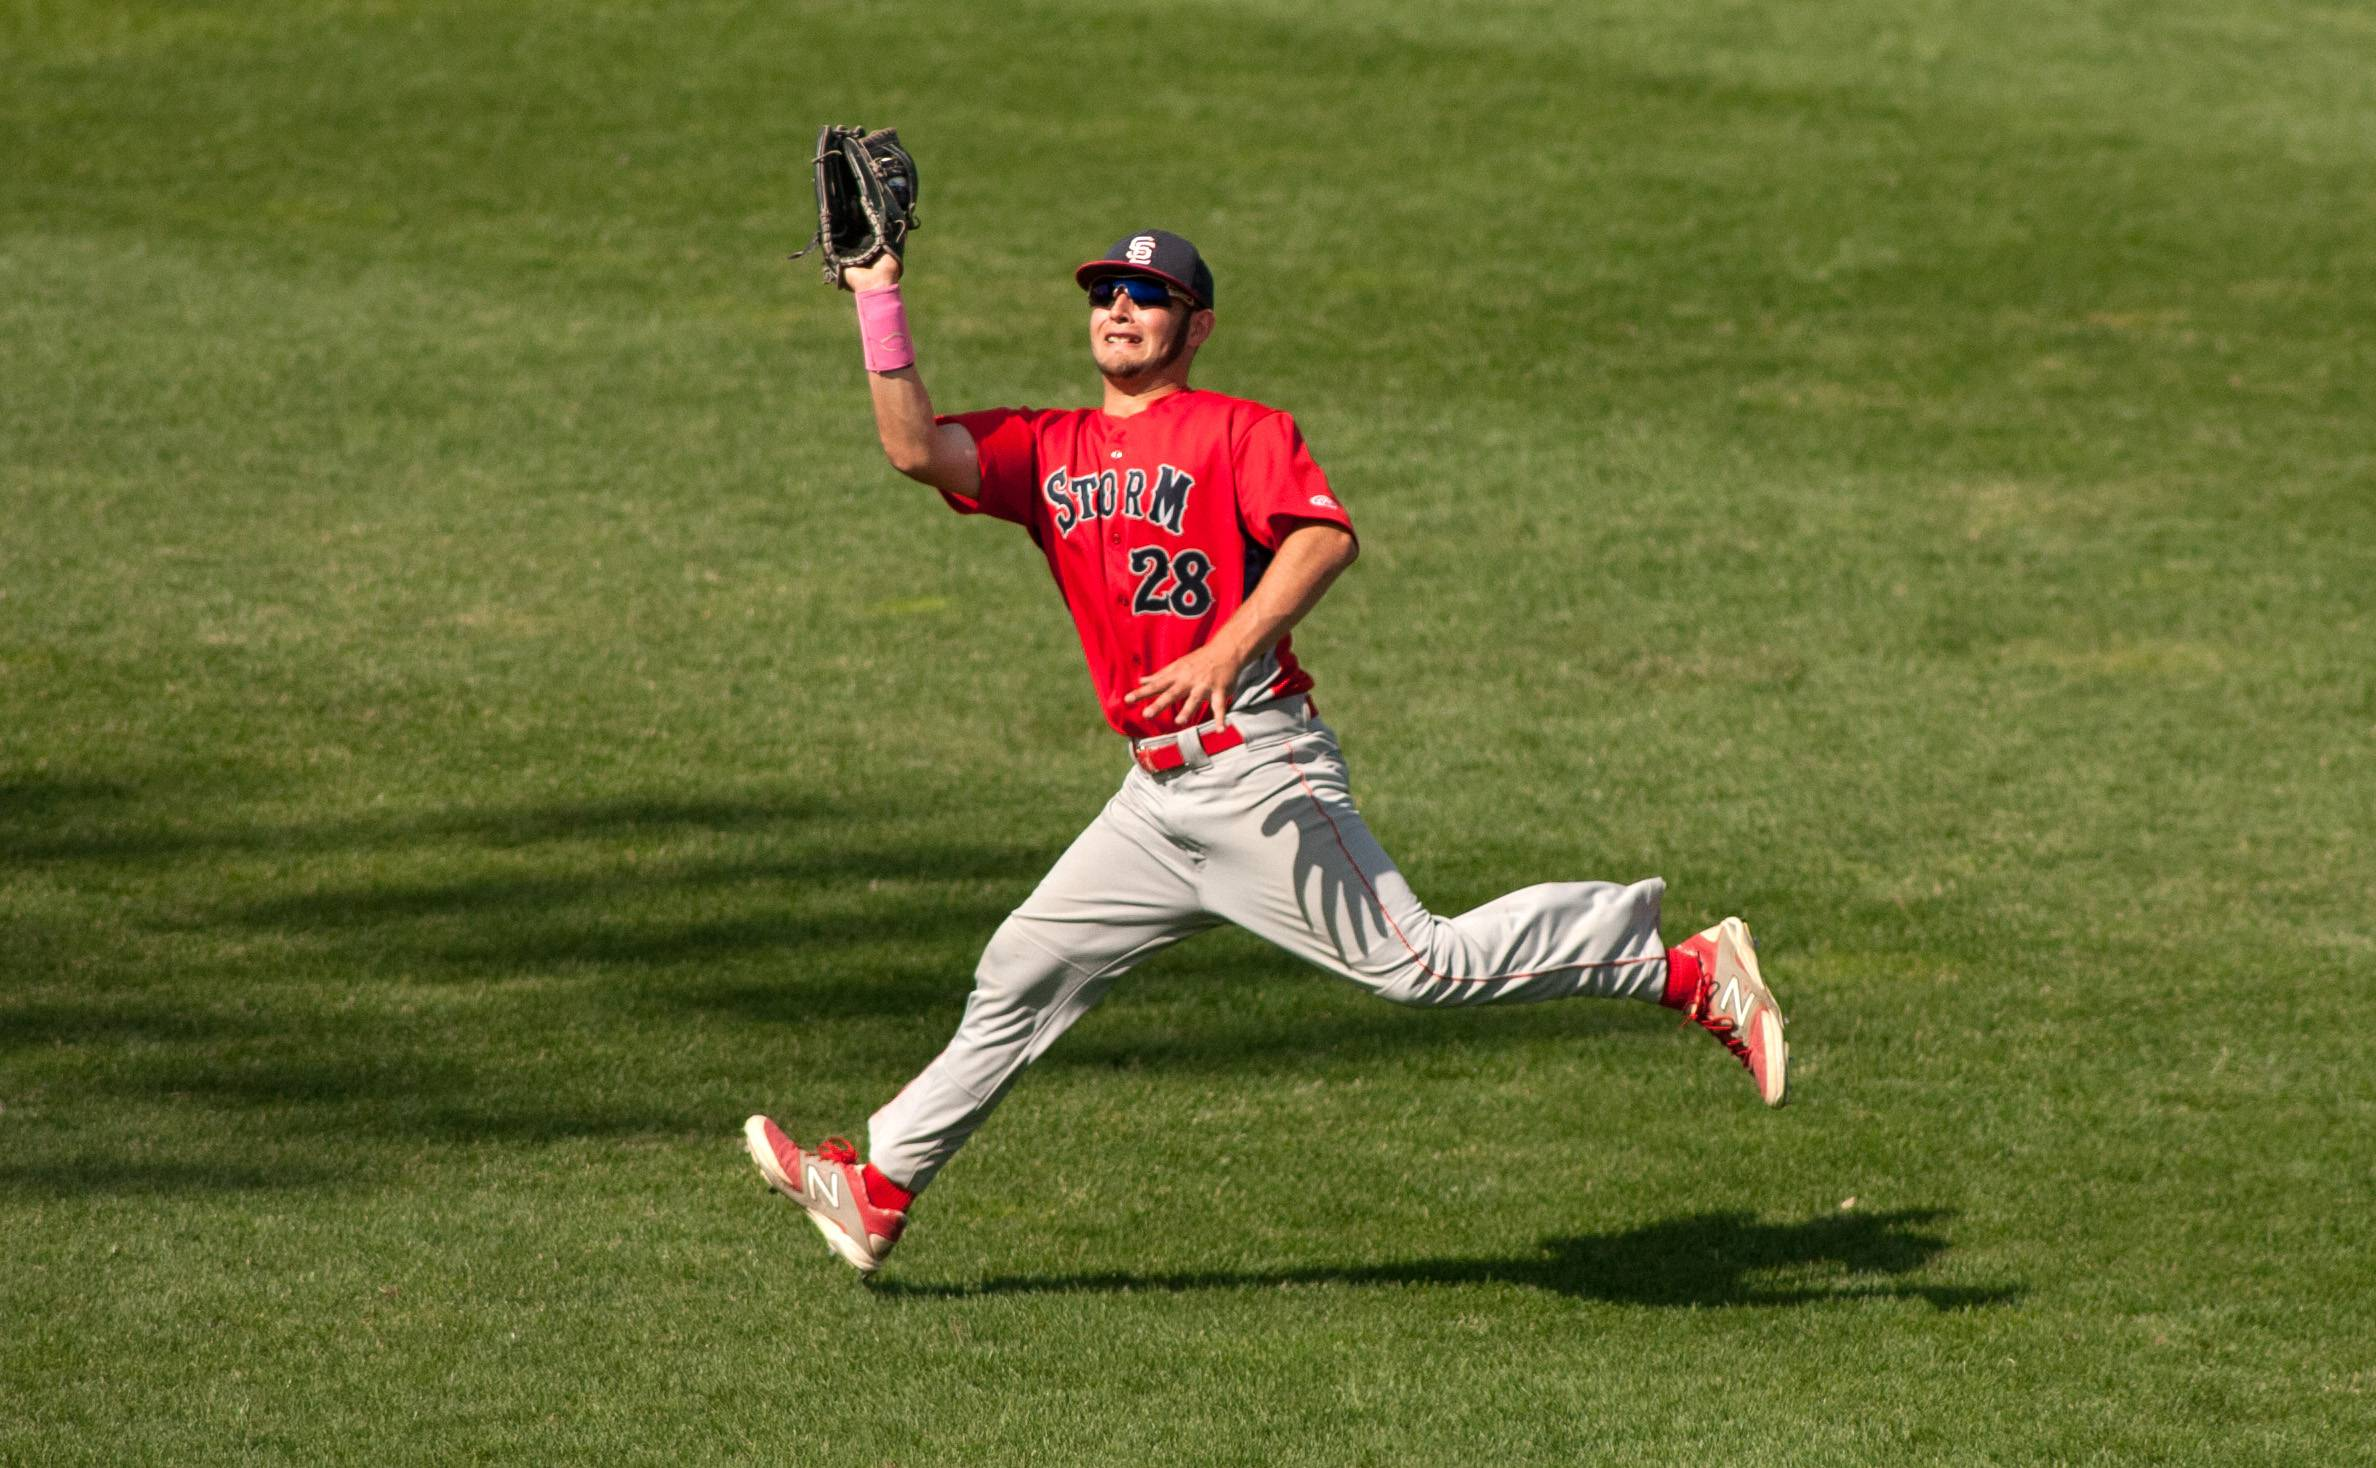 South Elgin outfielder Antonio Danesi makes a running catch against Prairie Ridge during the Class 4A third-place game at Silver Cross Field in Joliet.